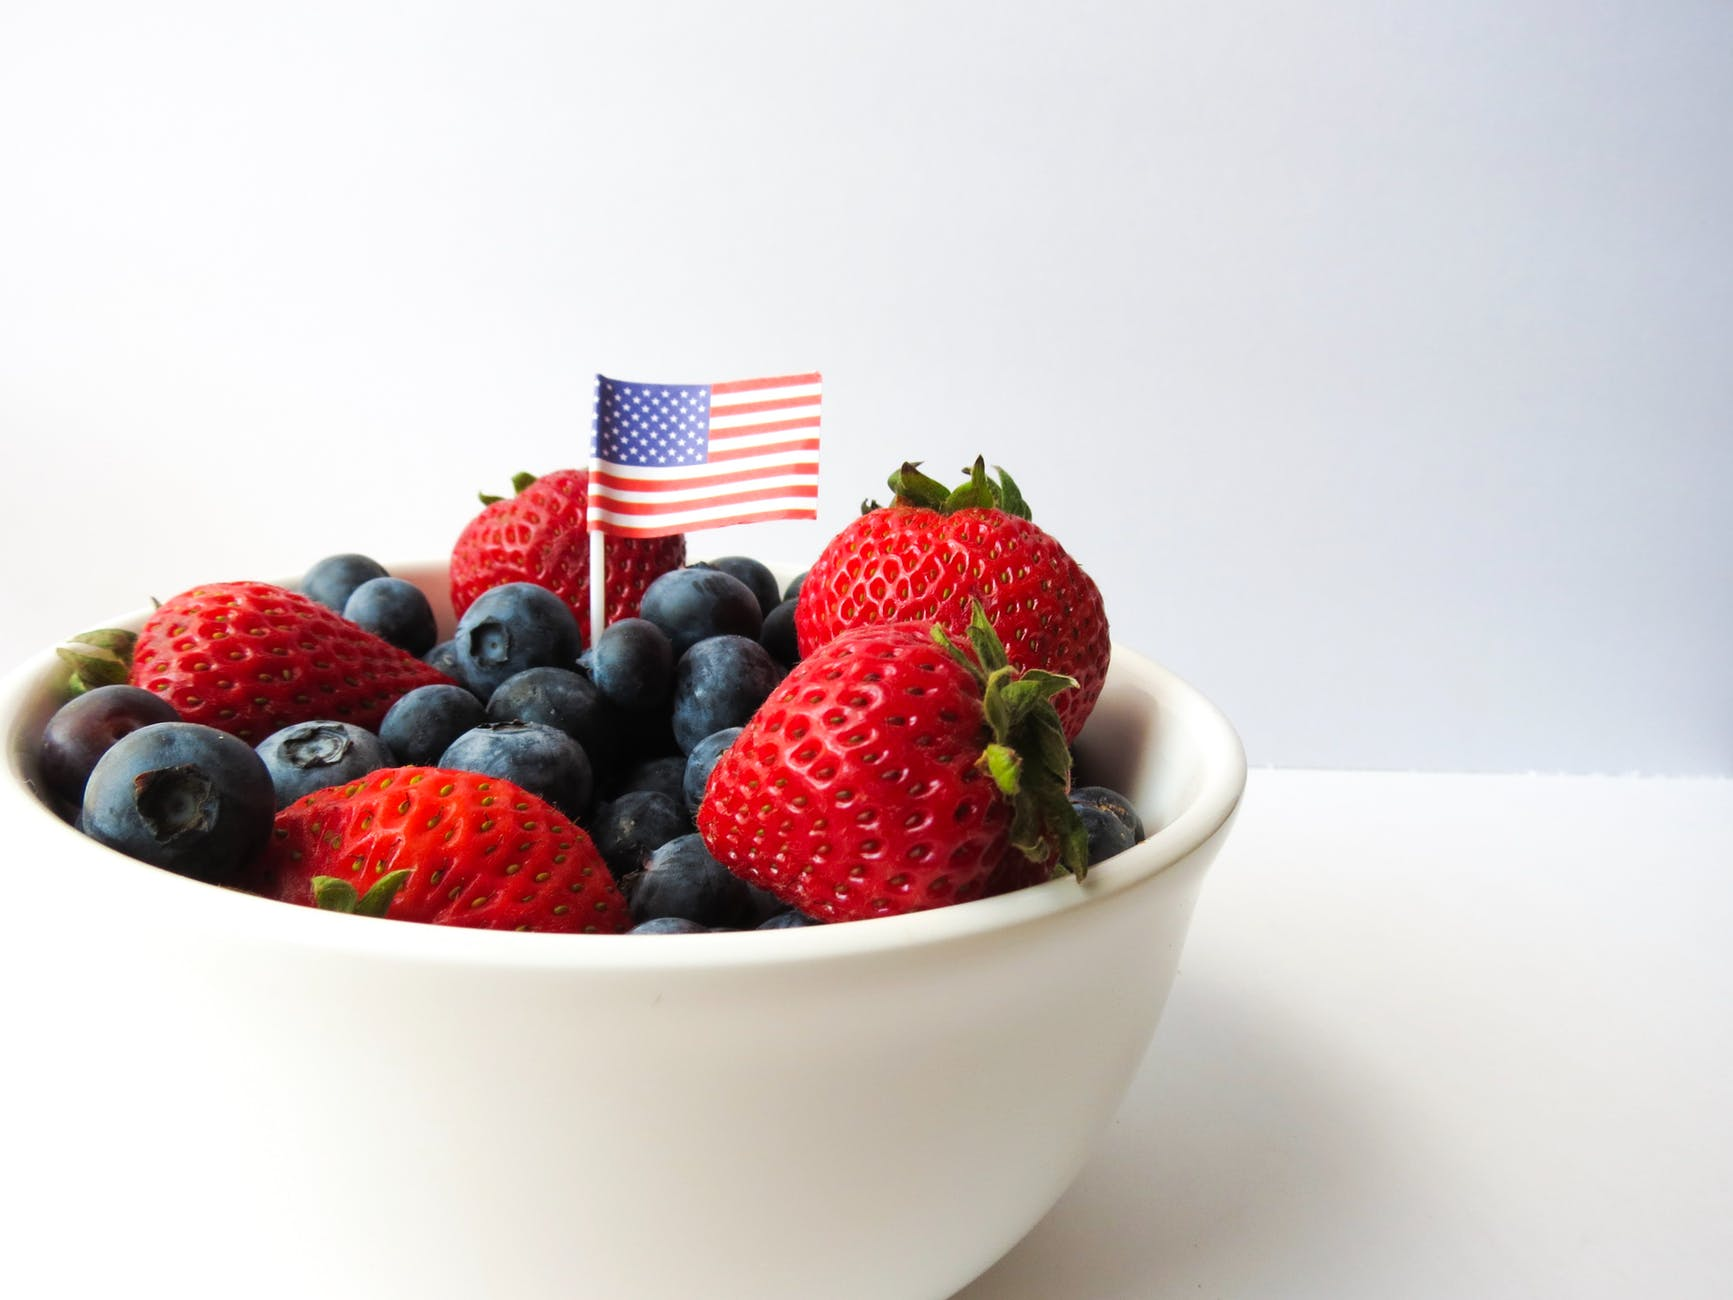 american flag berries bowl close up